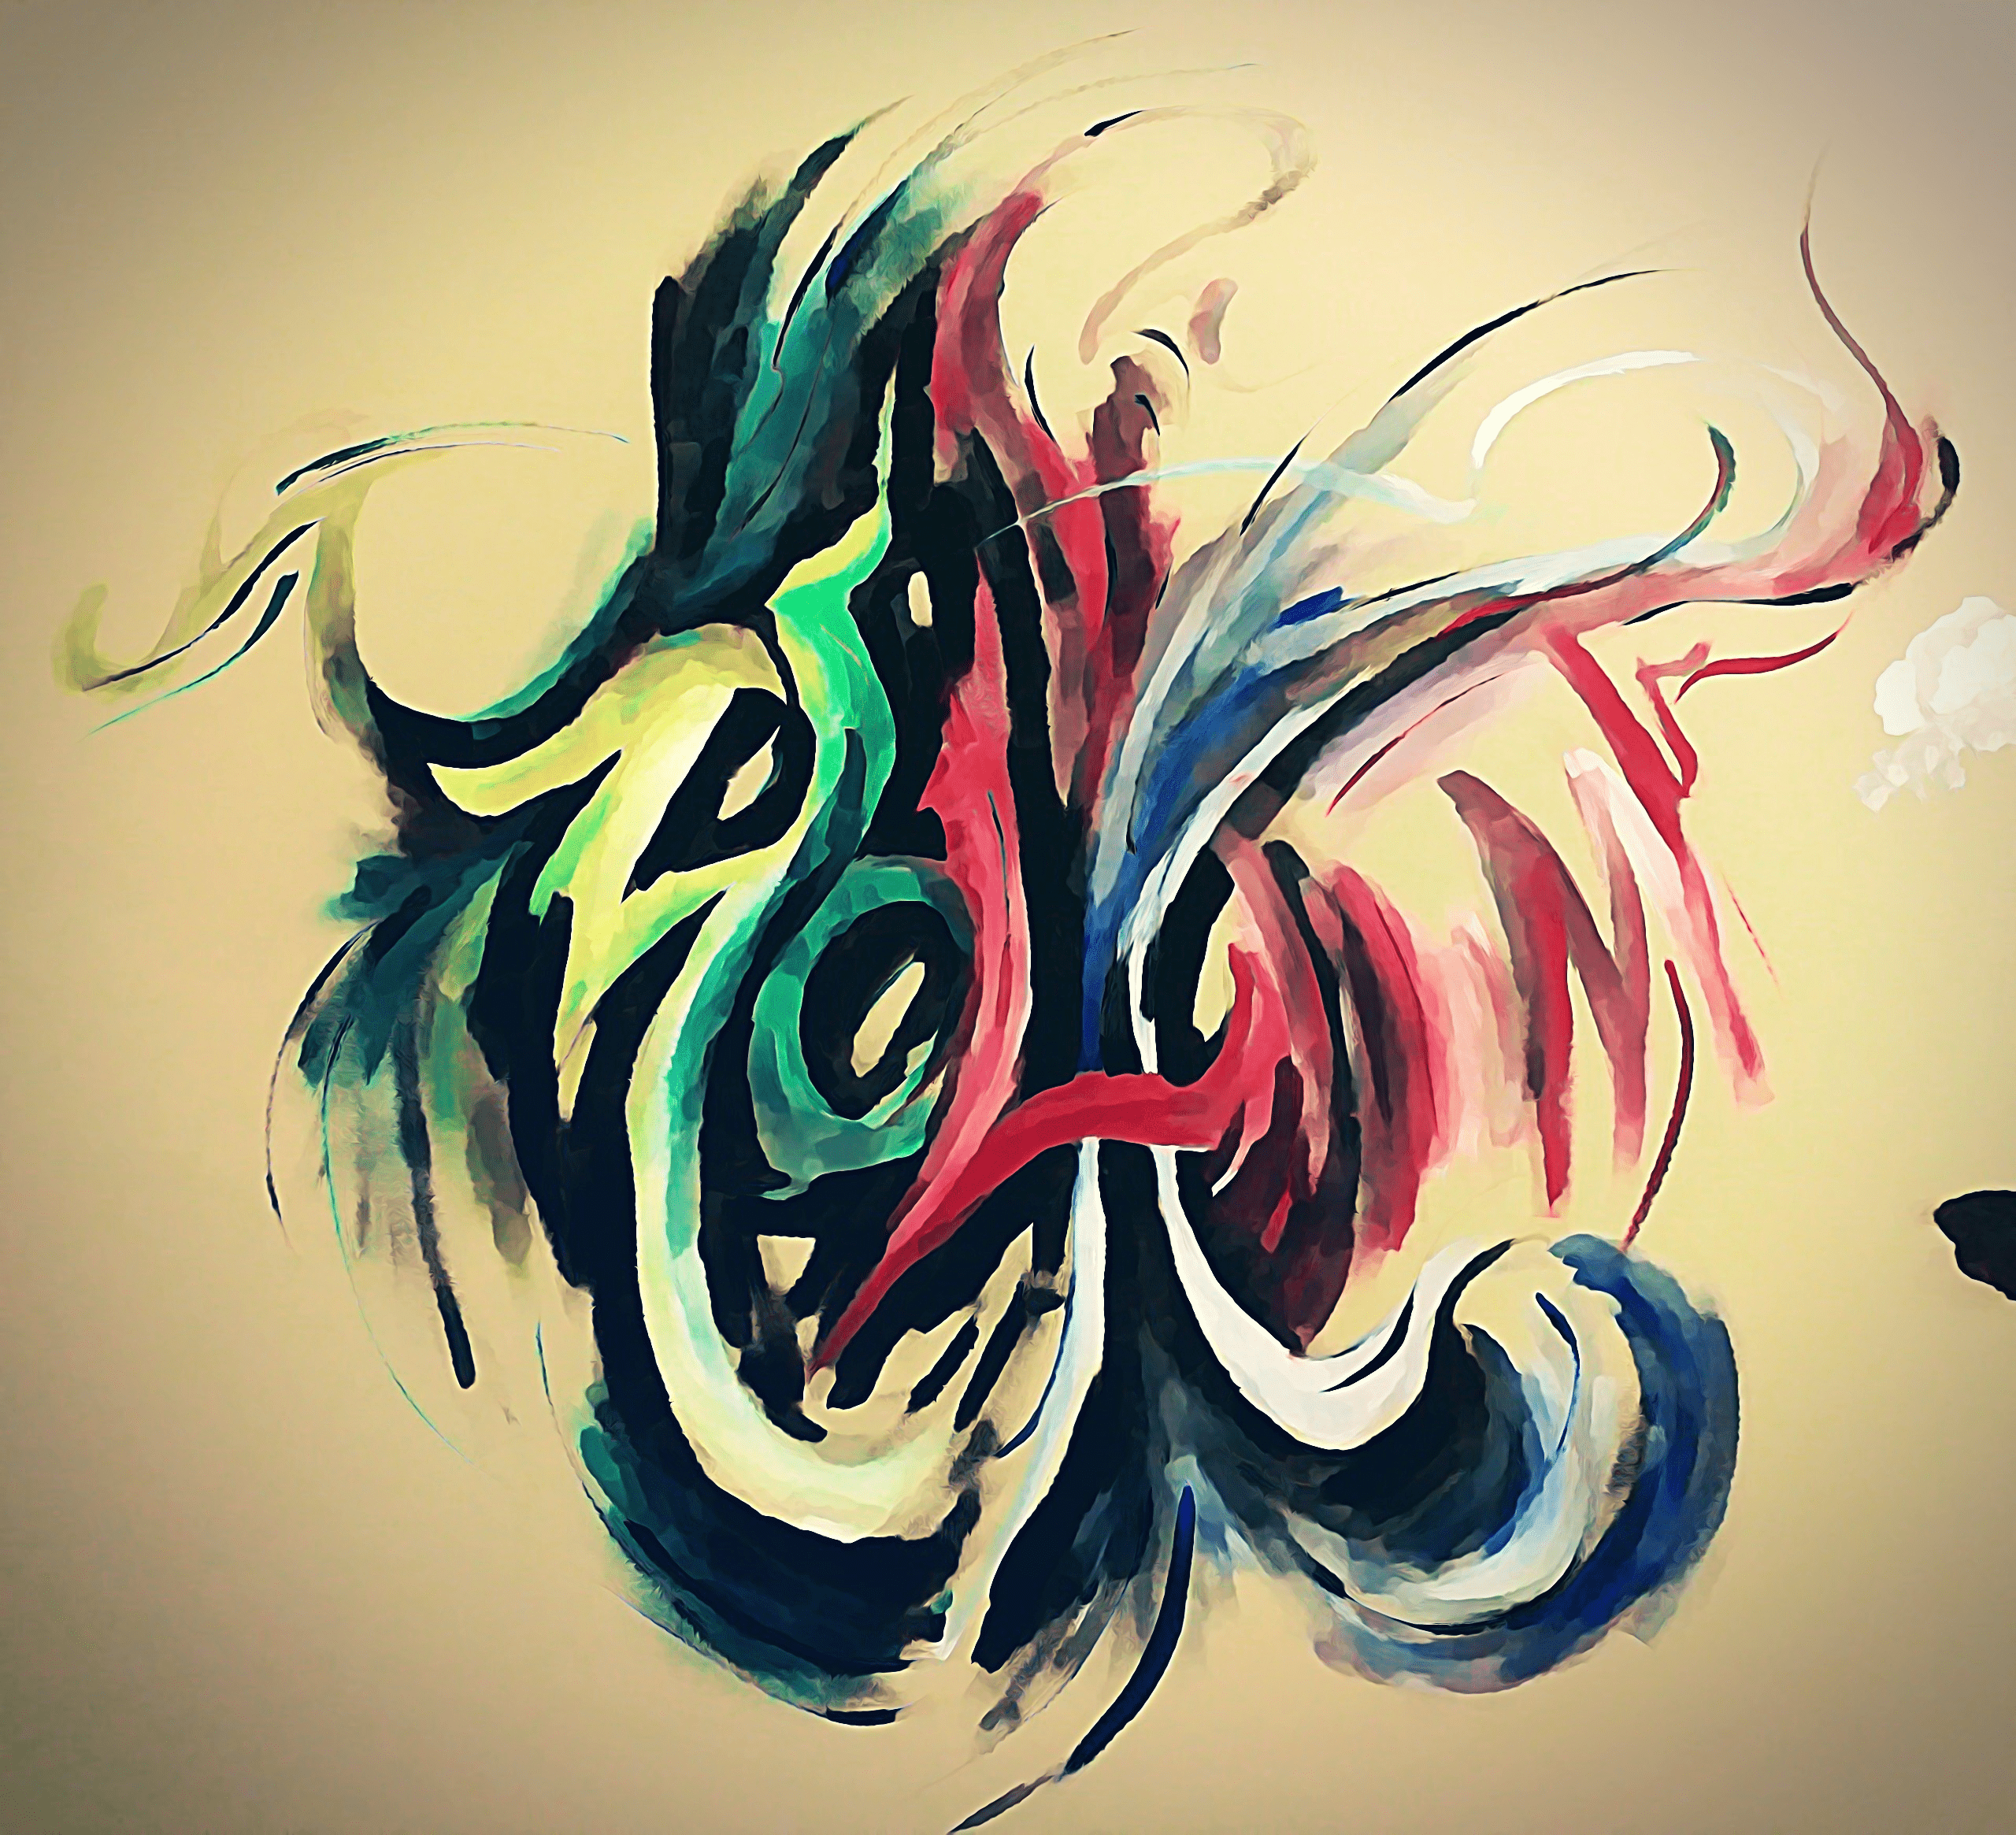 A very random painting that I did.